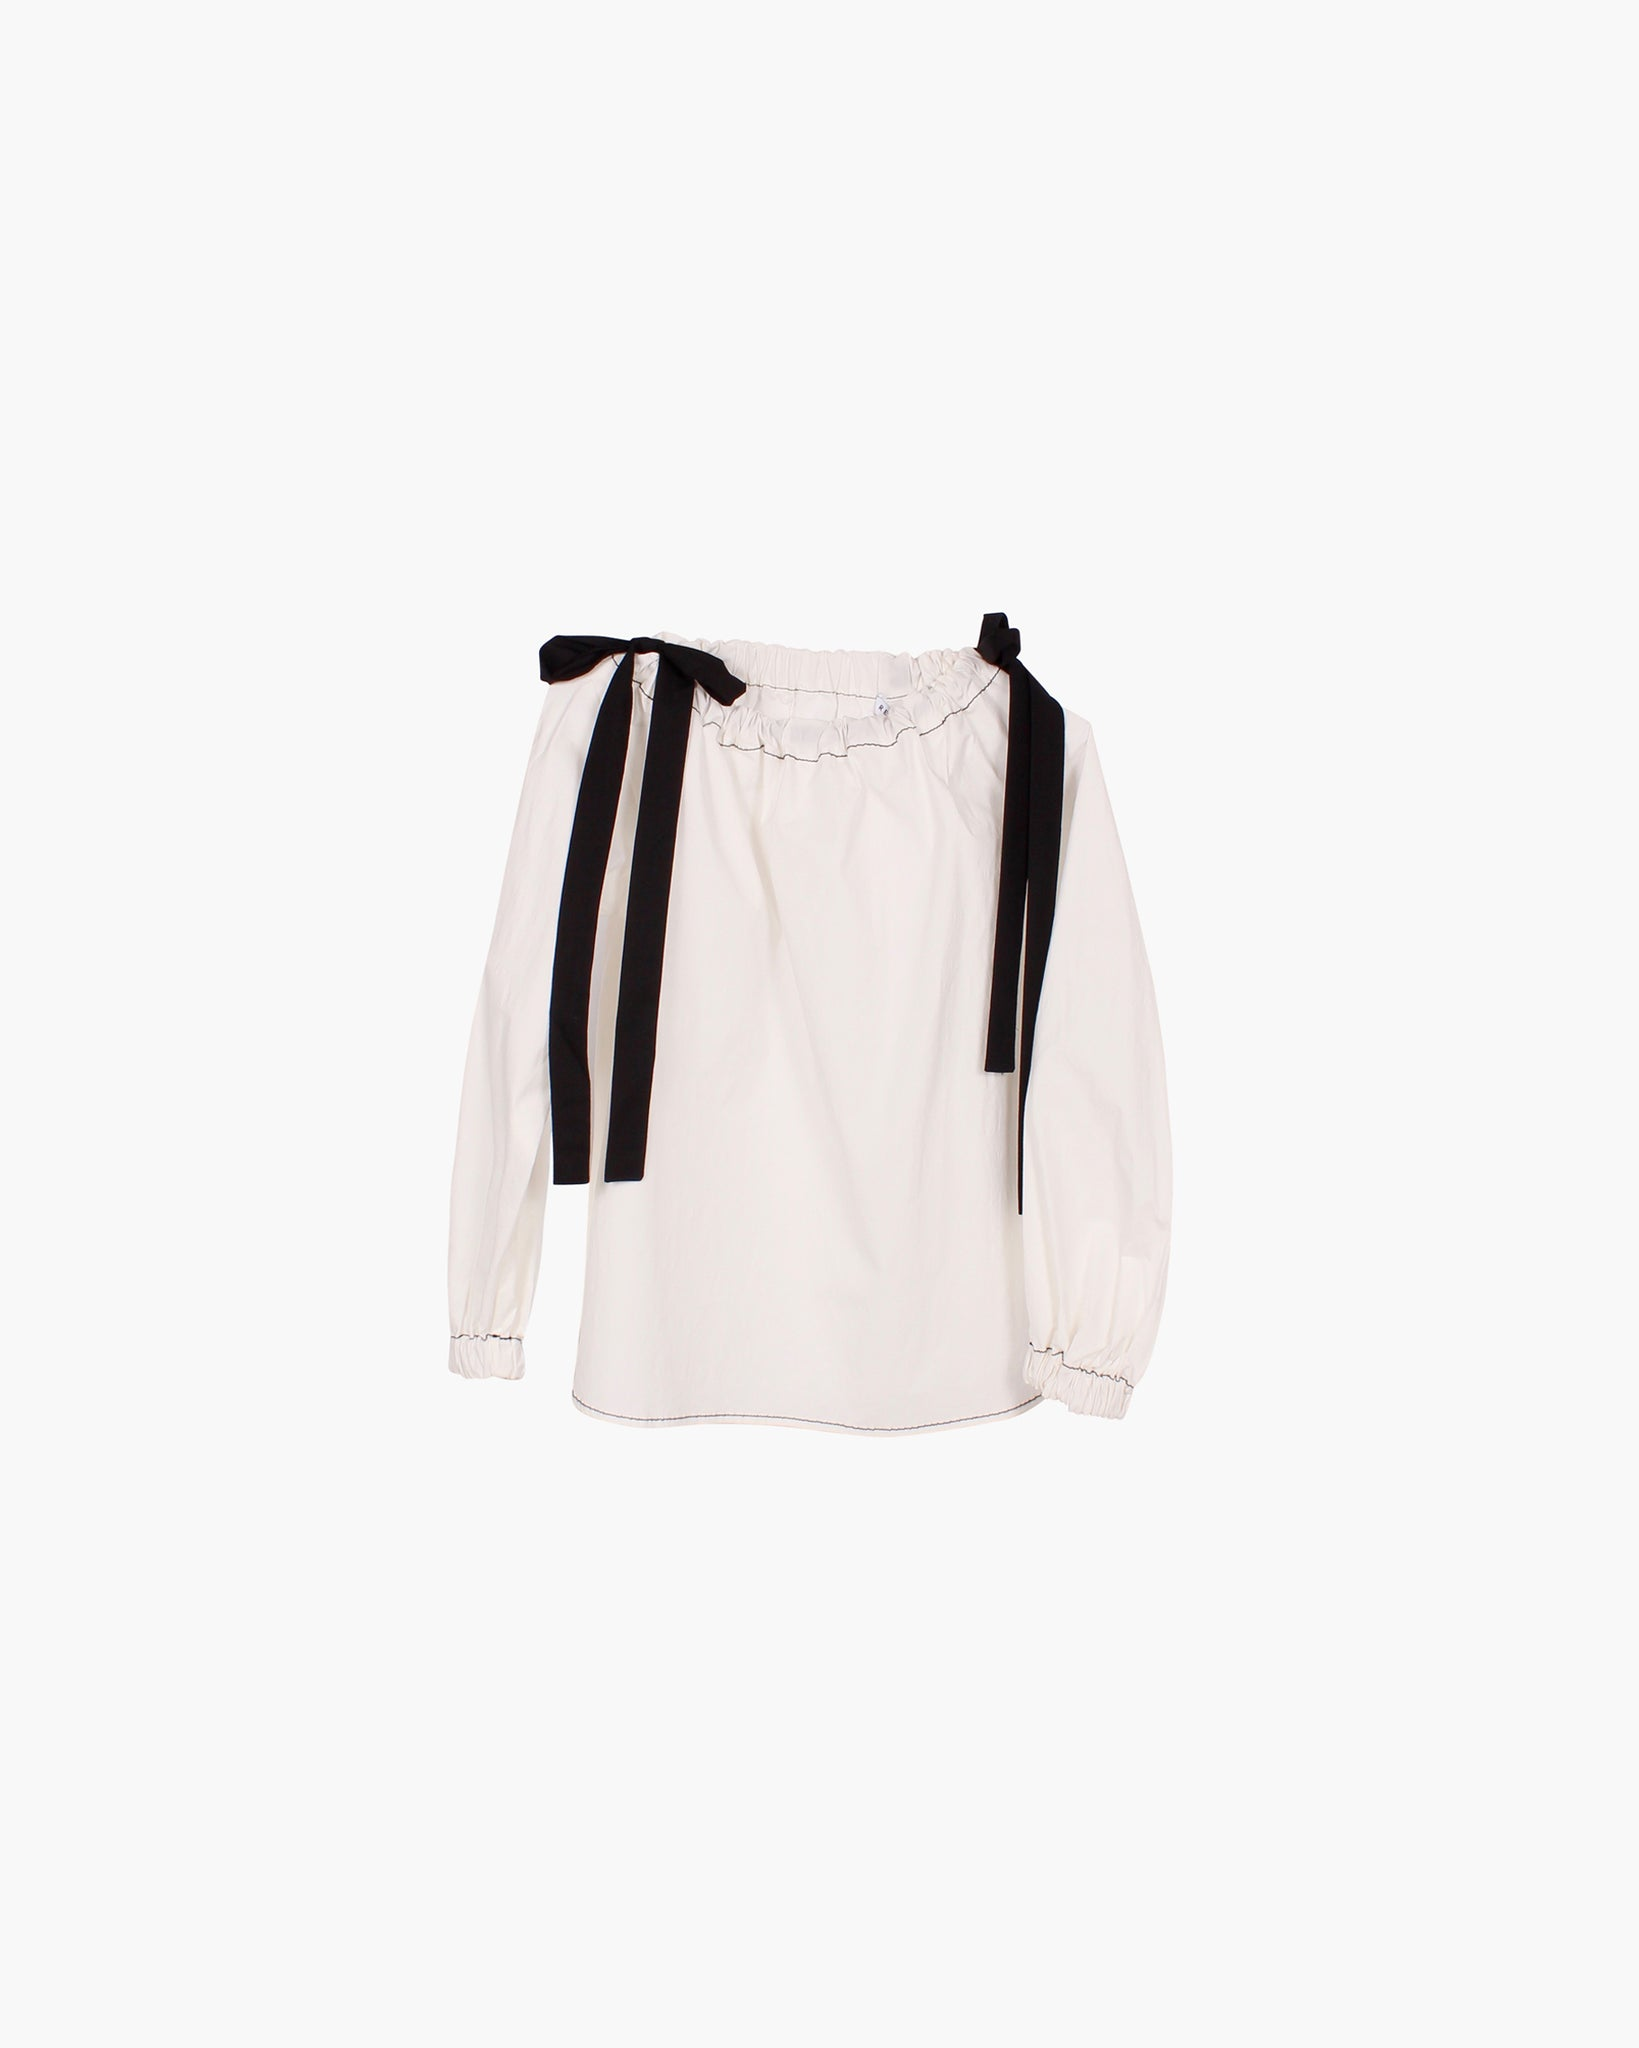 Heidi Cotton Poplin Off-white - SPECIAL PRICE